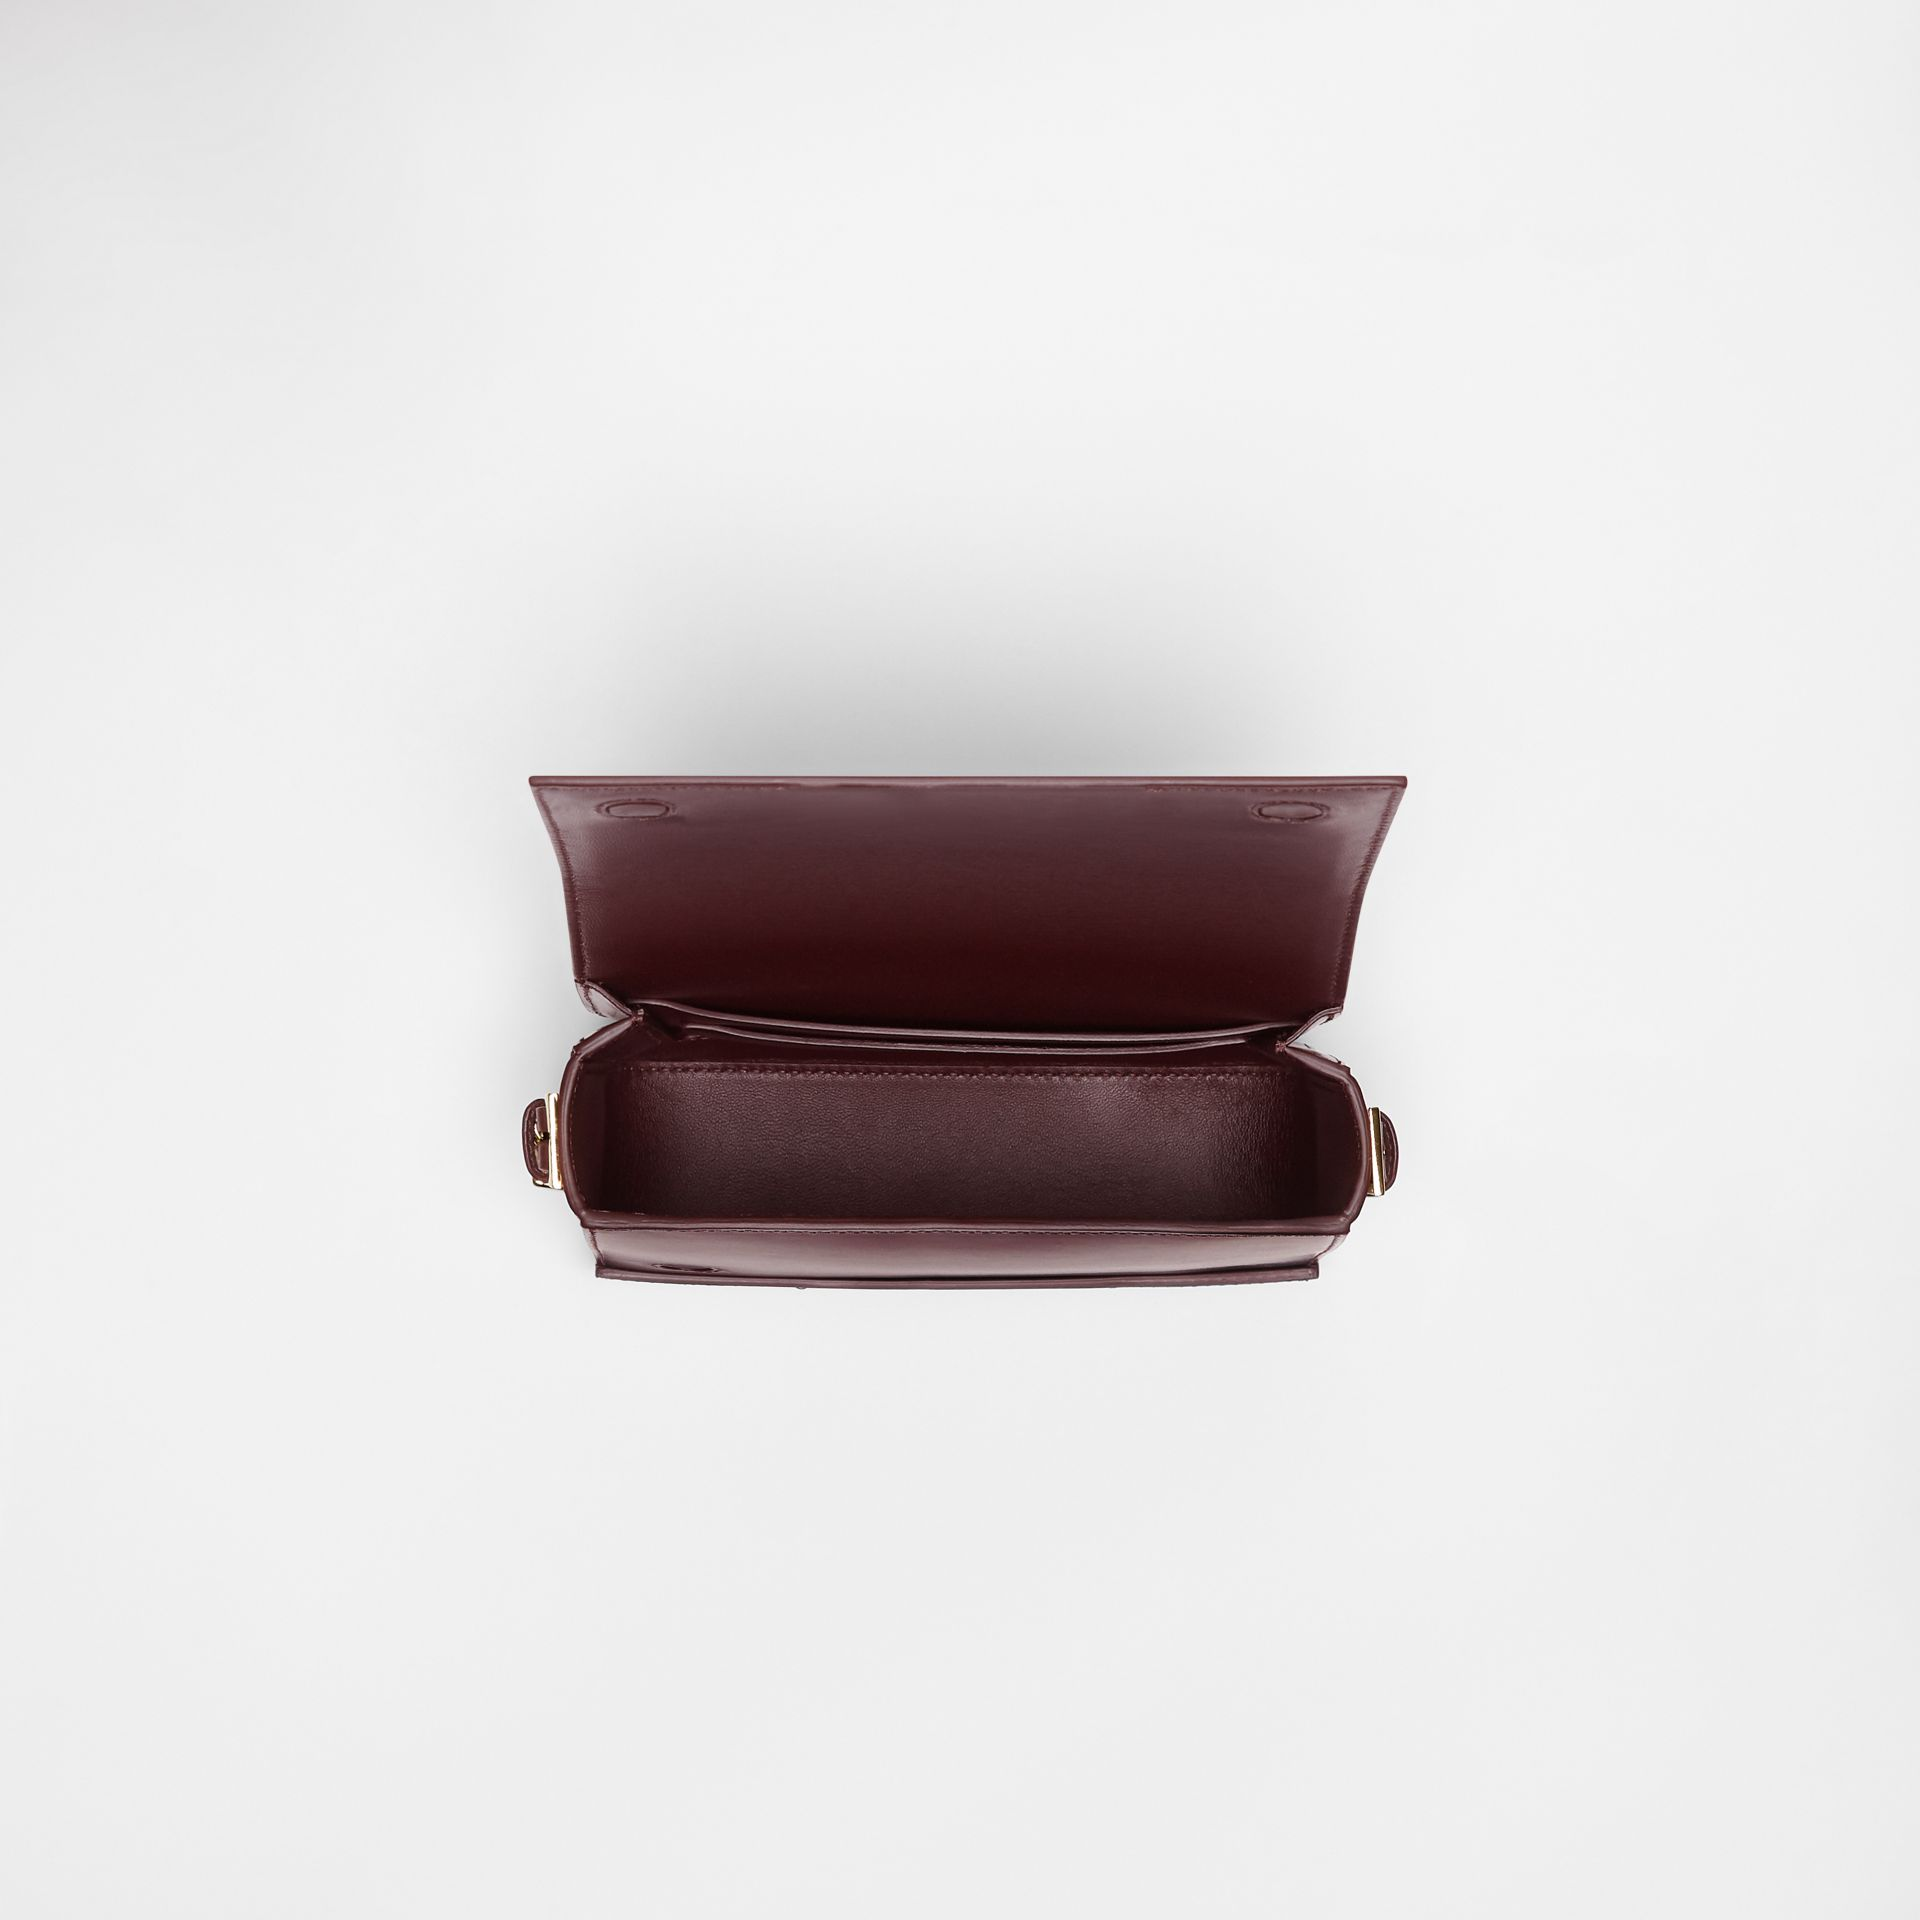 Small Leather Grace Bag in Oxblood - Women | Burberry - gallery image 3